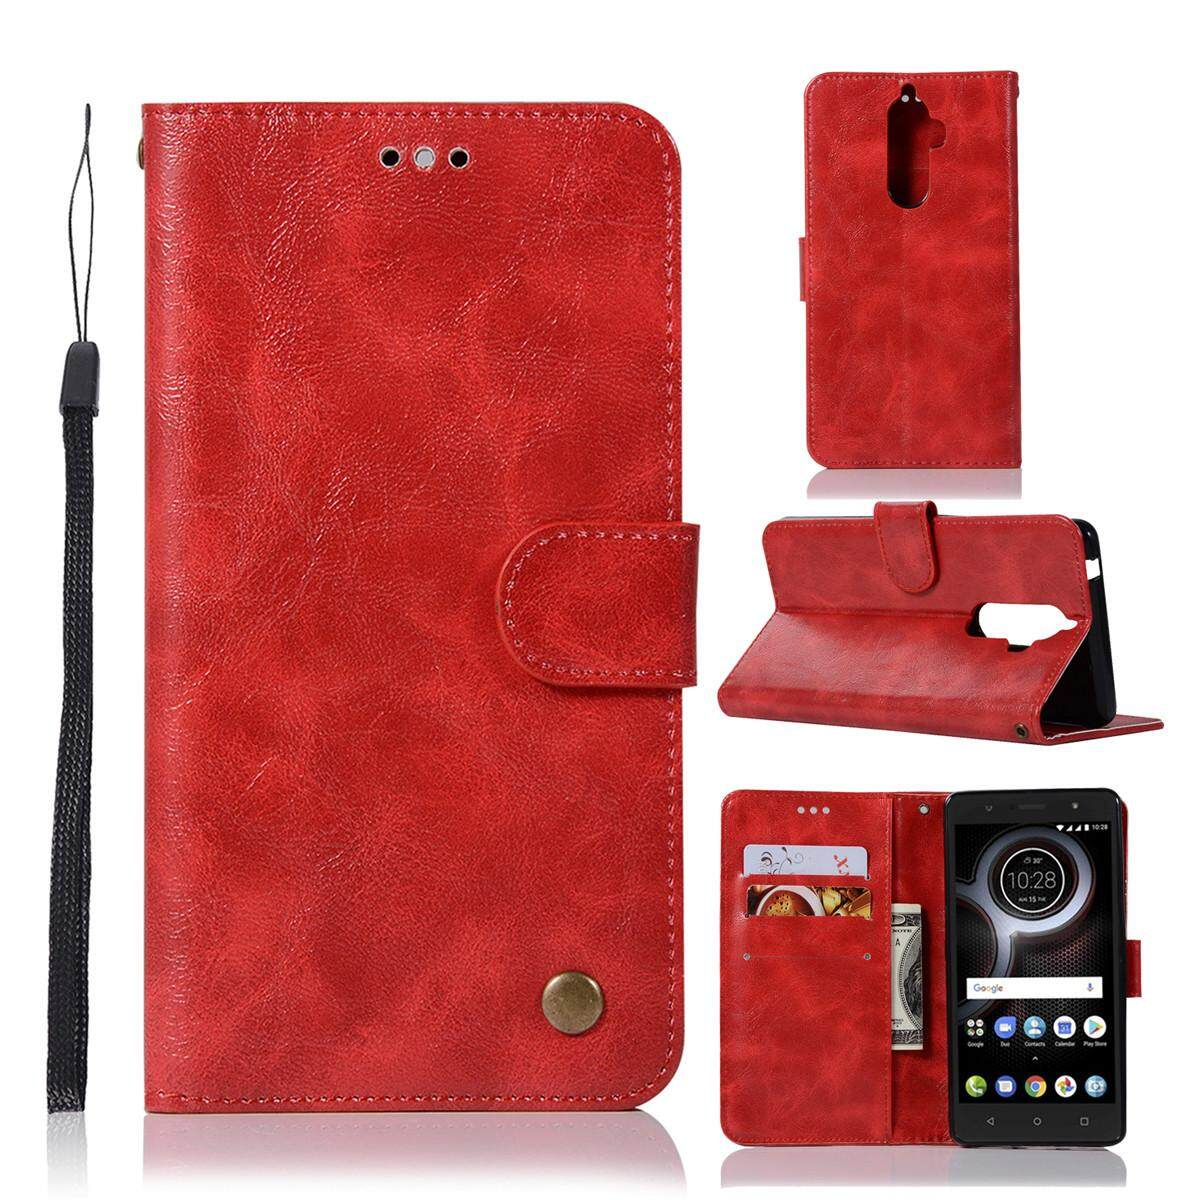 Case for Lenovo K8 Note Vintage Case PU Leather Magnetic Flip Stand Wallet Cover with Card Slots and Hand Strap - intl